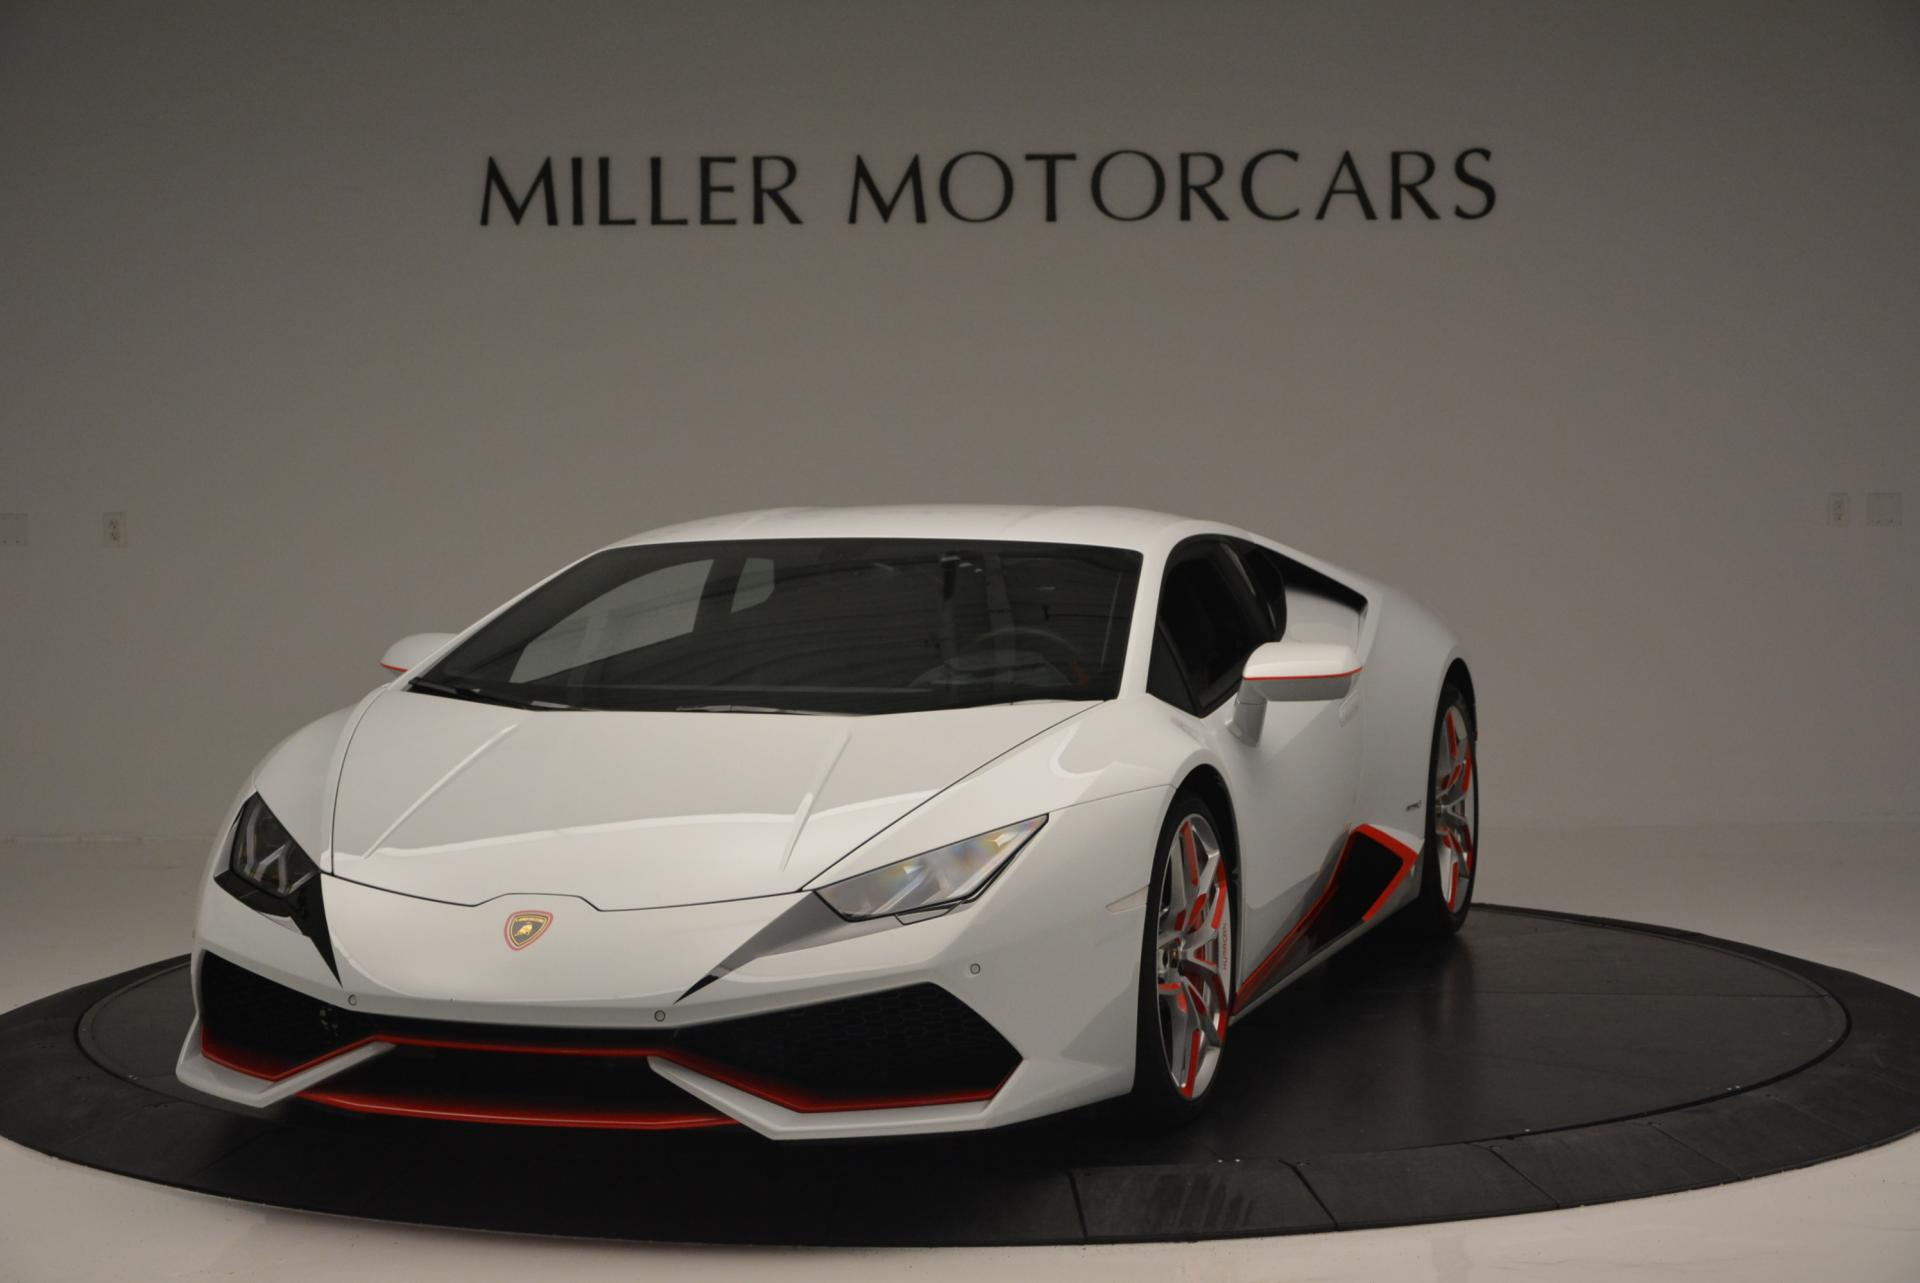 Used 2015 Lamborghini Huracan LP610-4 for sale Sold at Bugatti of Greenwich in Greenwich CT 06830 1